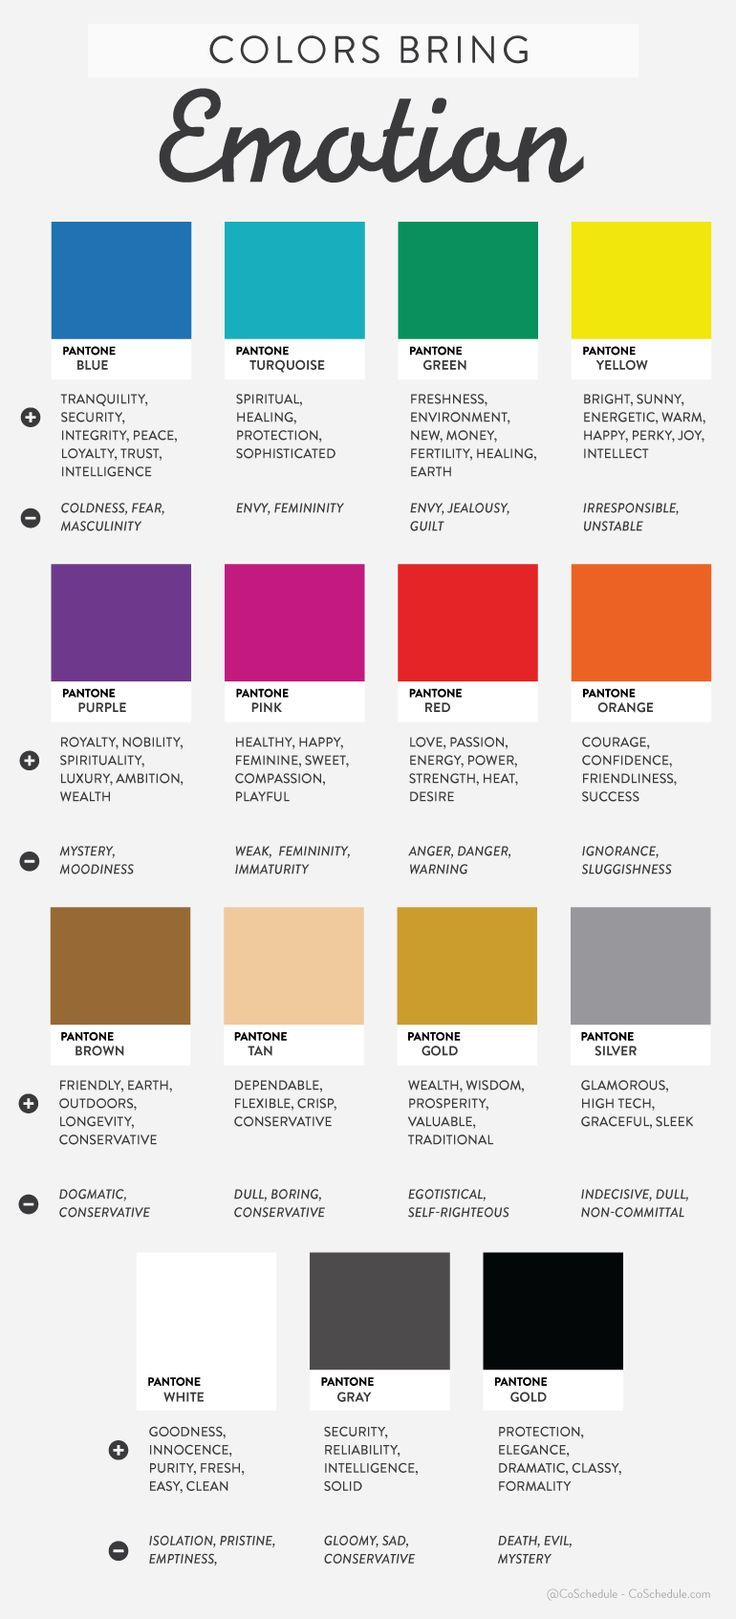 The ultimate color guide for content marketing